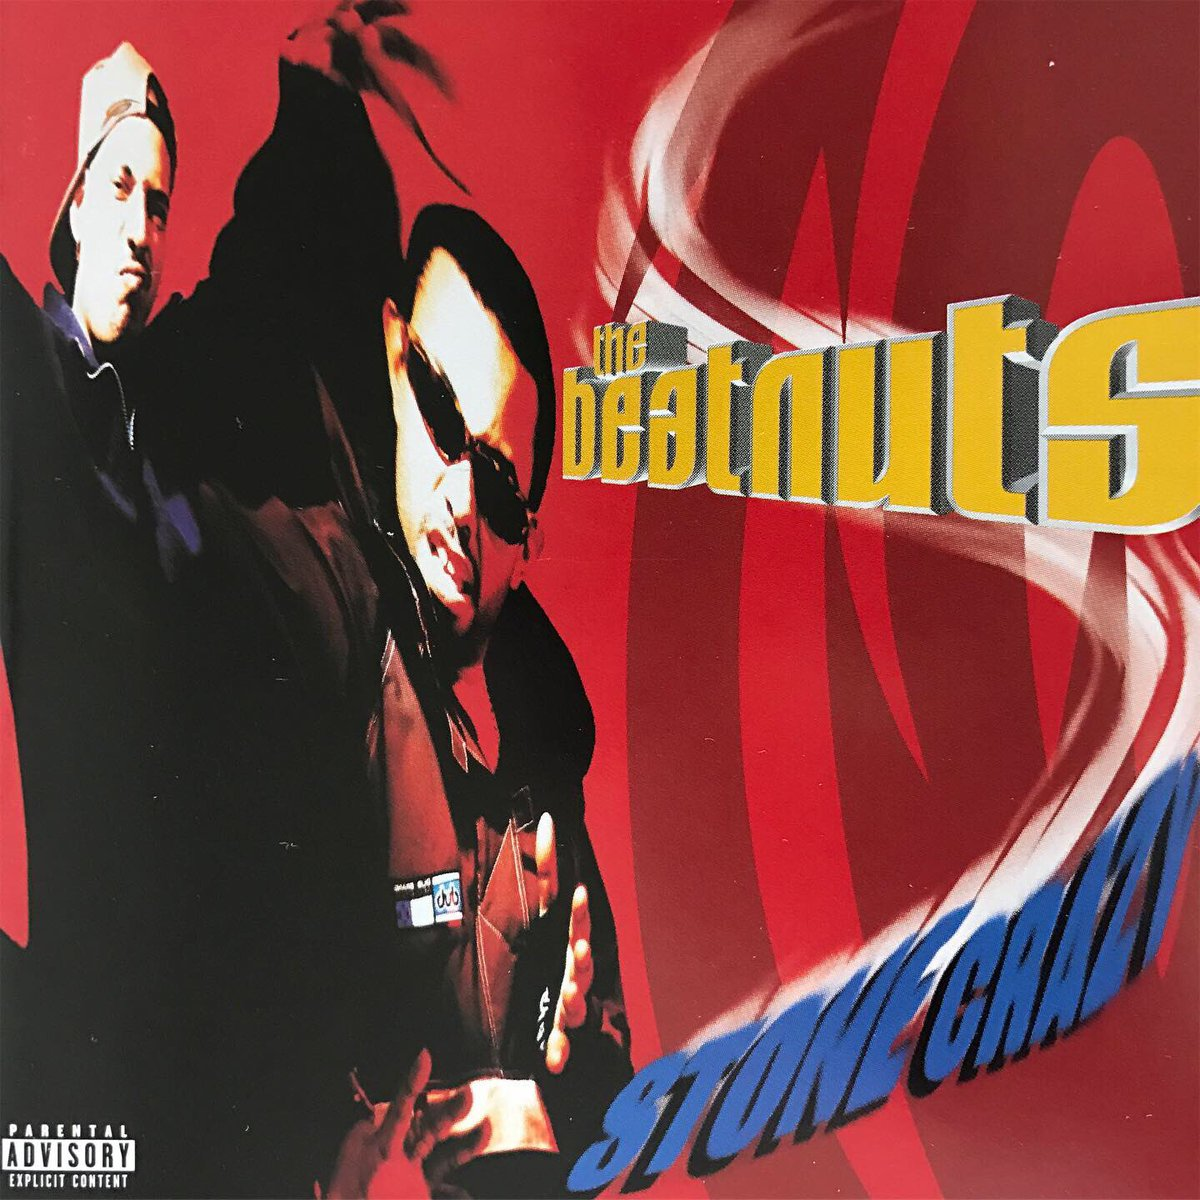 The Beatnuts Stone Crazy Albums not on spotify